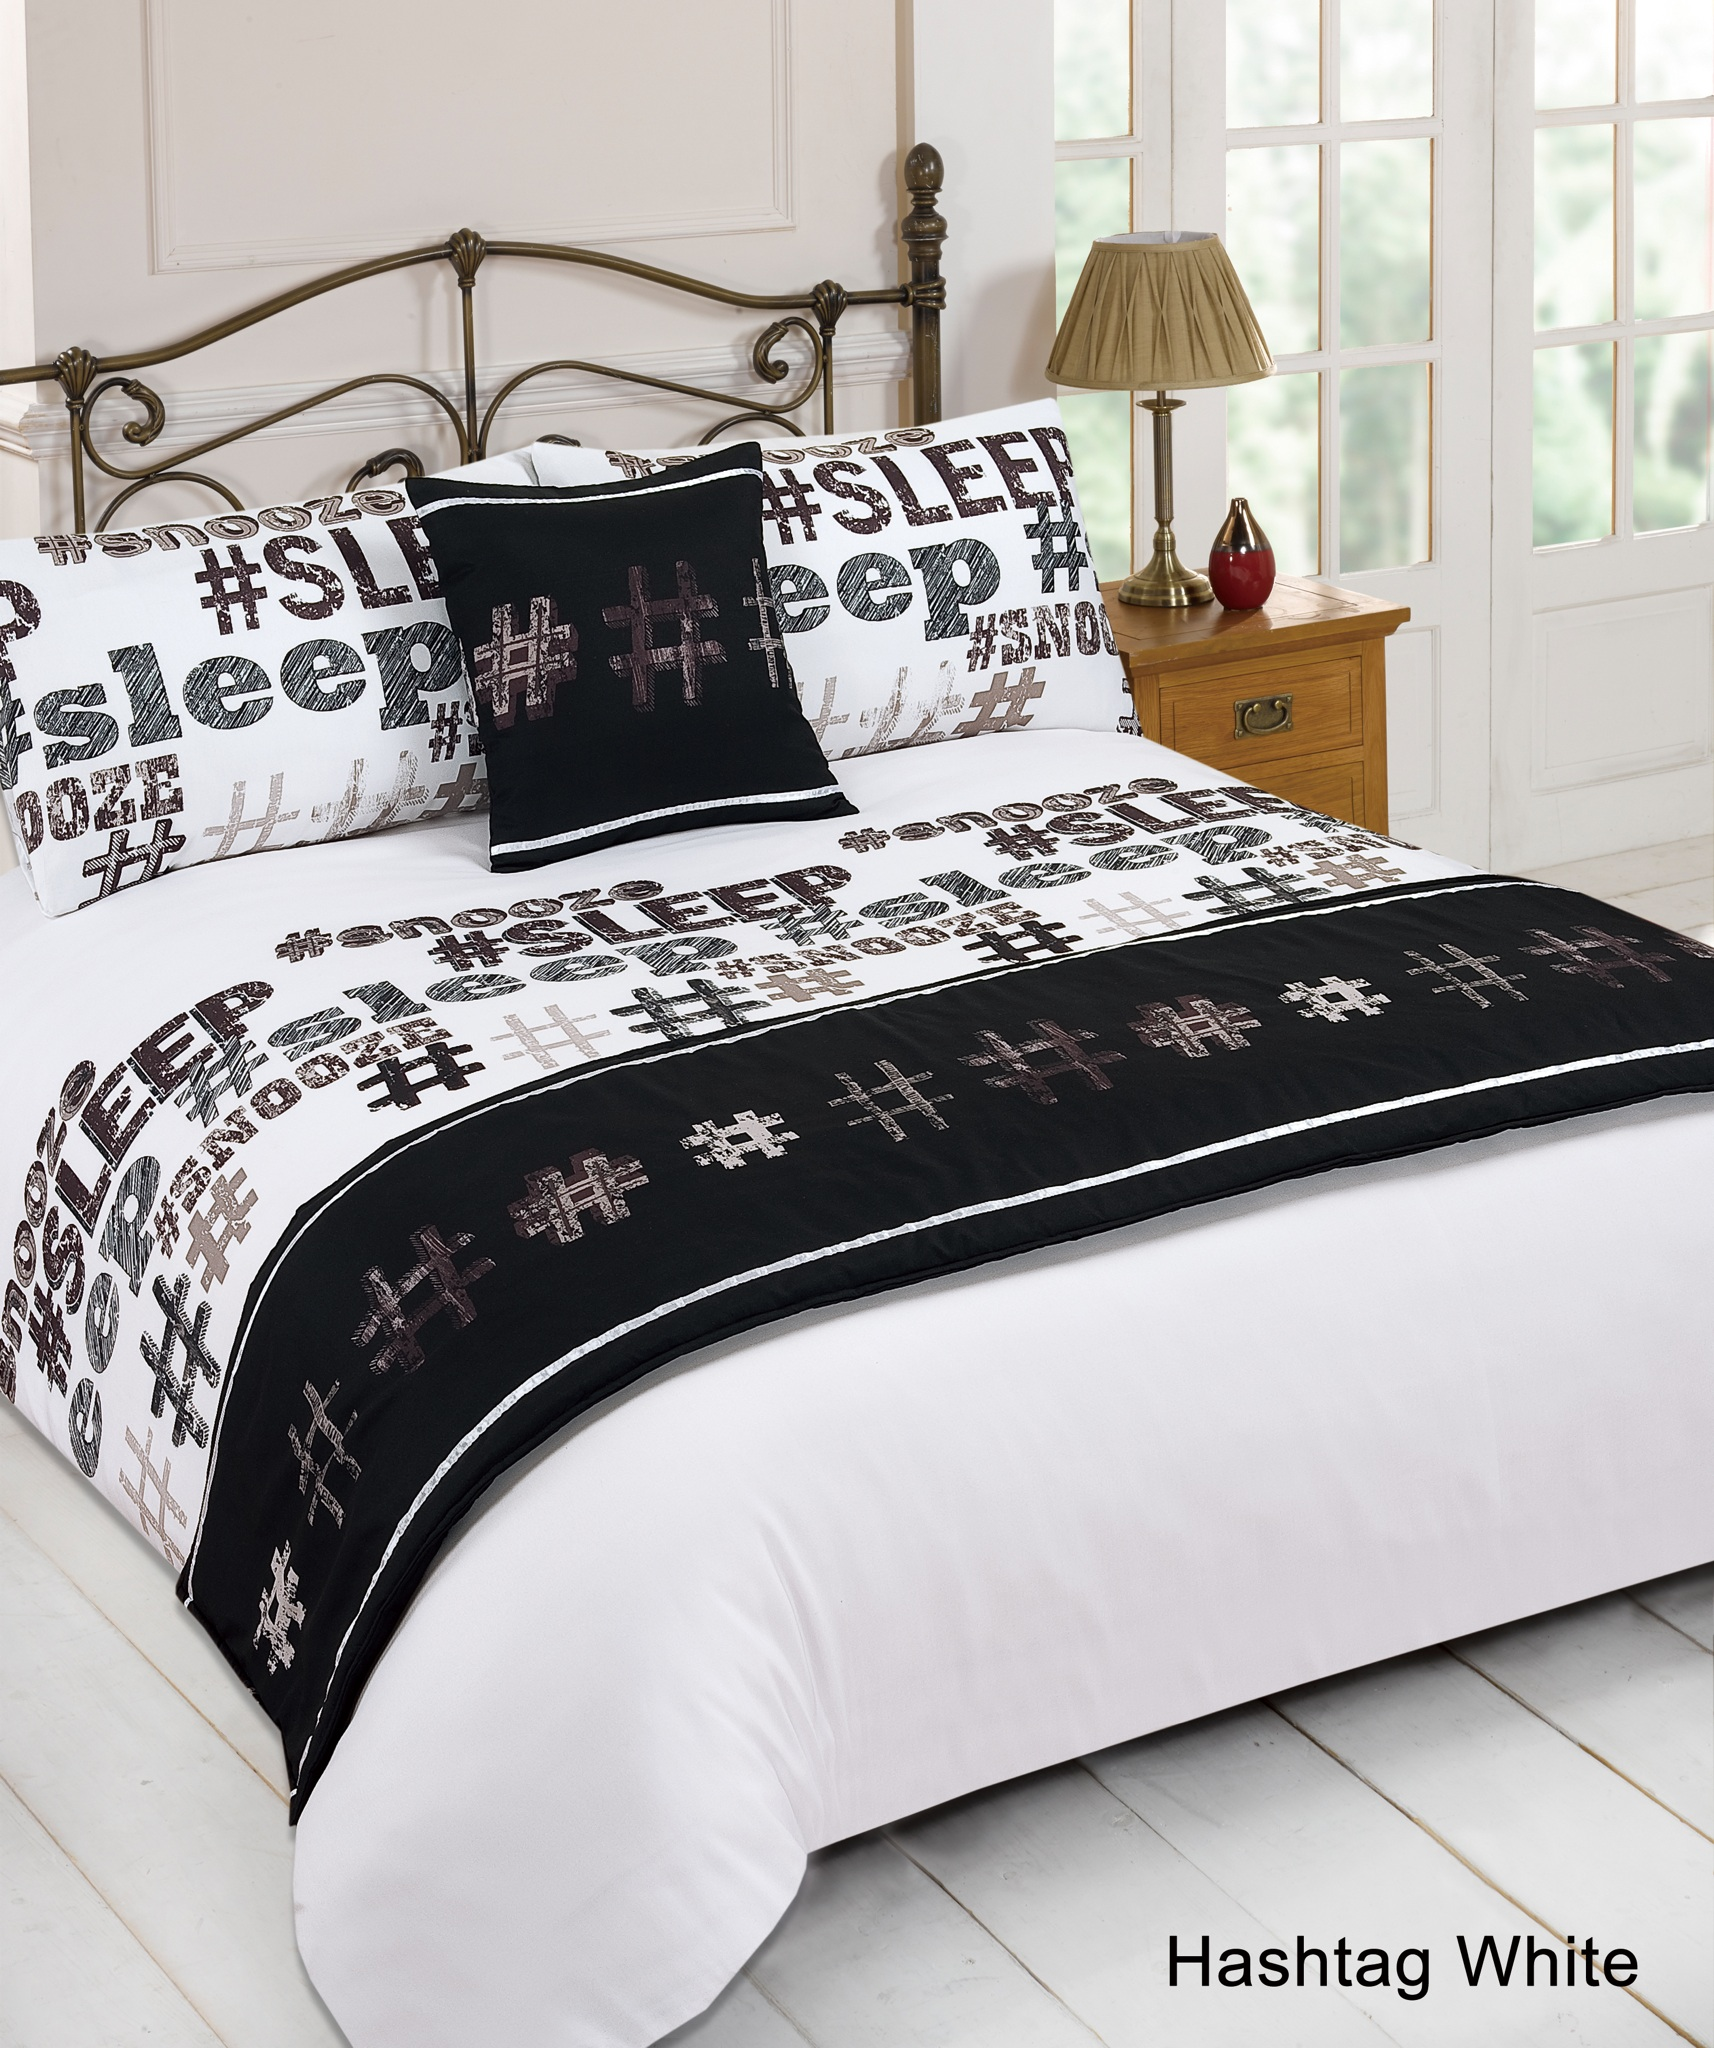 black bed cheap bath awesome quilt sets size bedroom set sheet bedding down and queen comforter target beyond clearance comforters sizemforter top sale